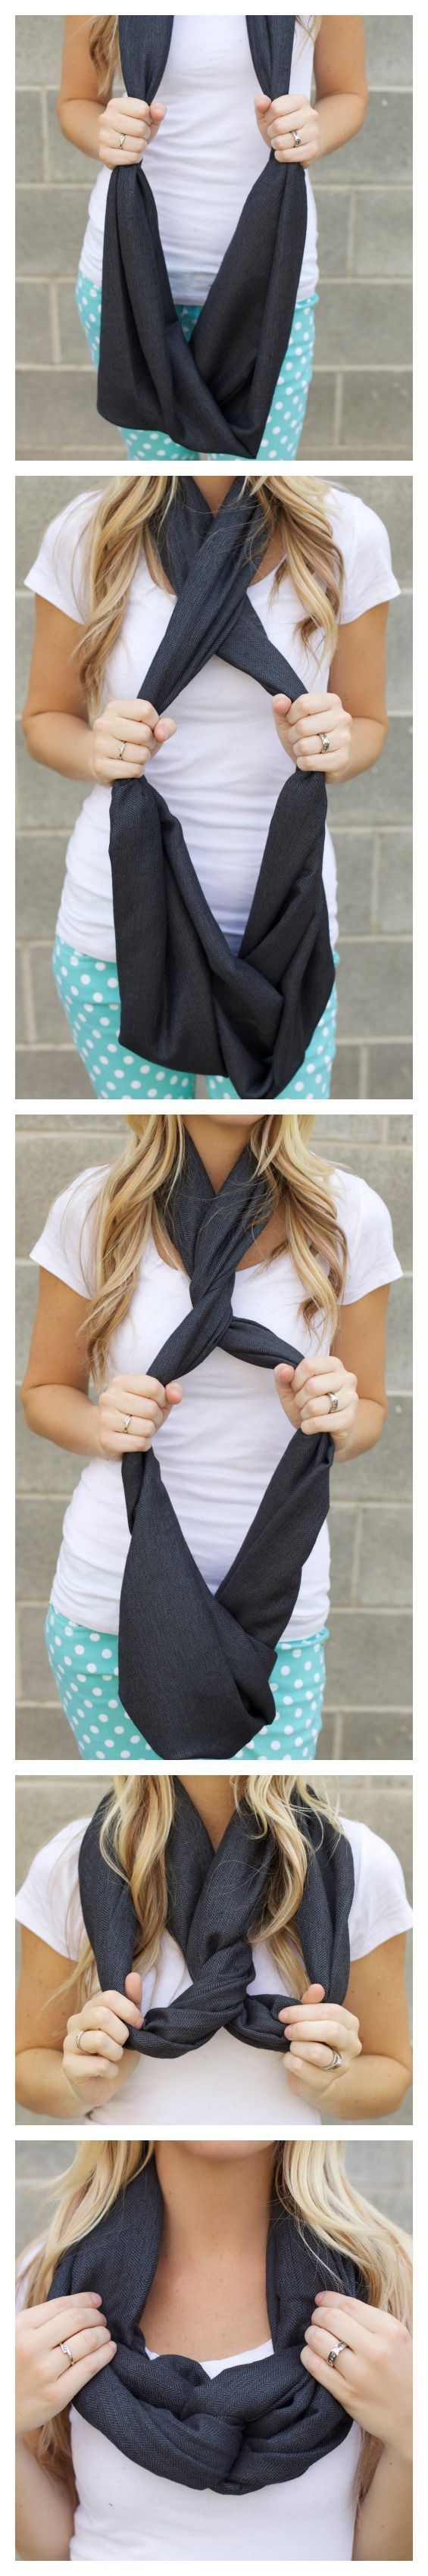 21 ways to wear an infinity scarf infinity scarfs ties